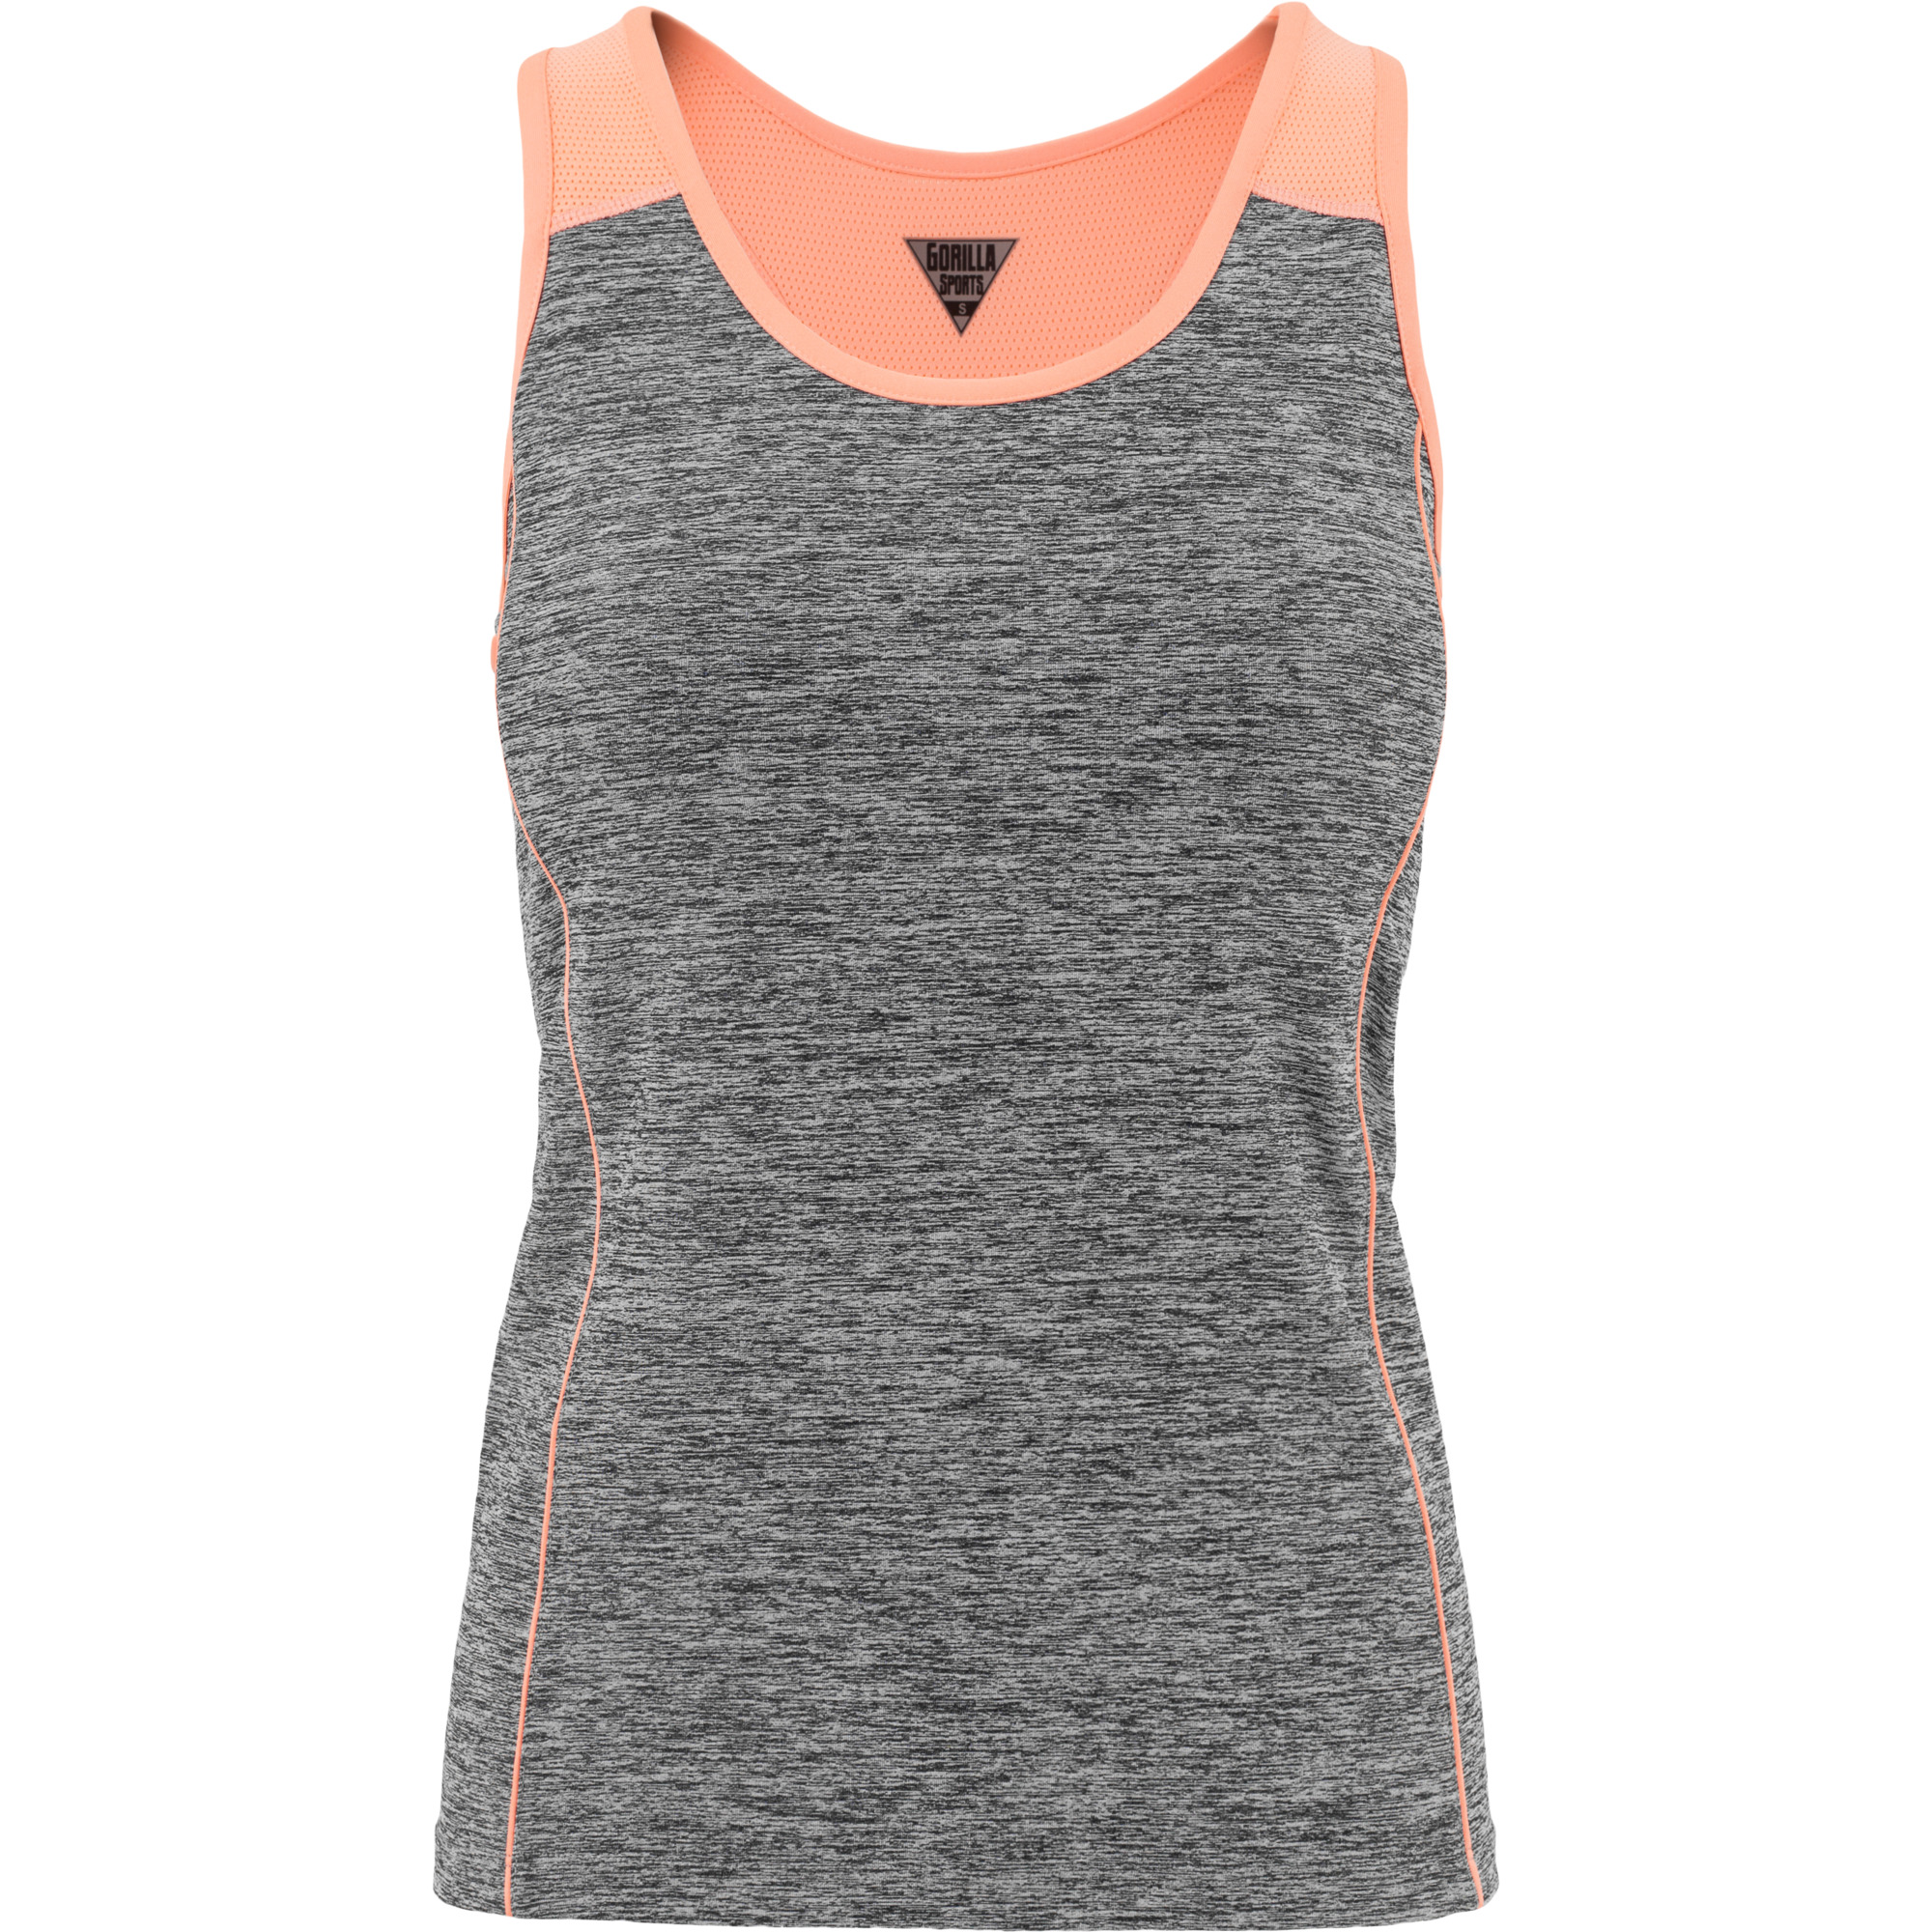 Tank Top für Damen in Grau L